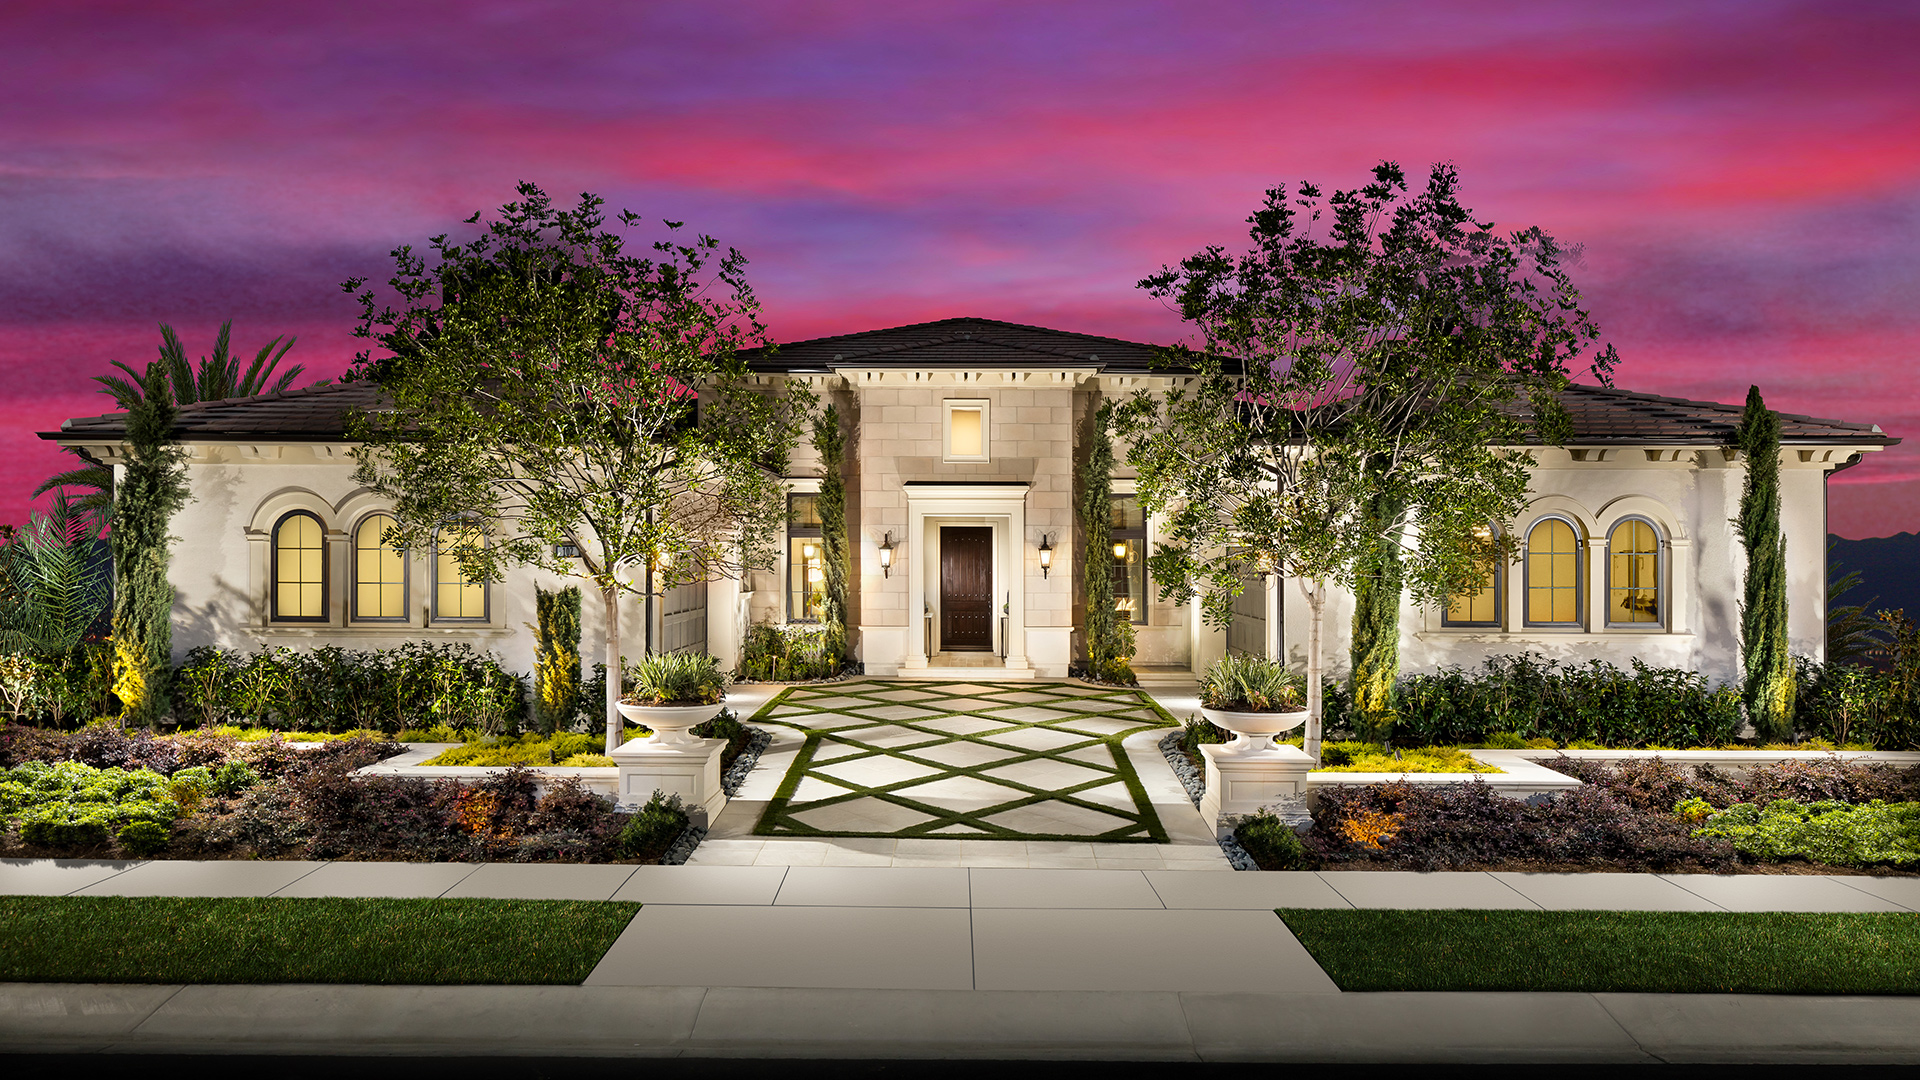 New Luxury Homes For Sale In Yorba Linda Ca